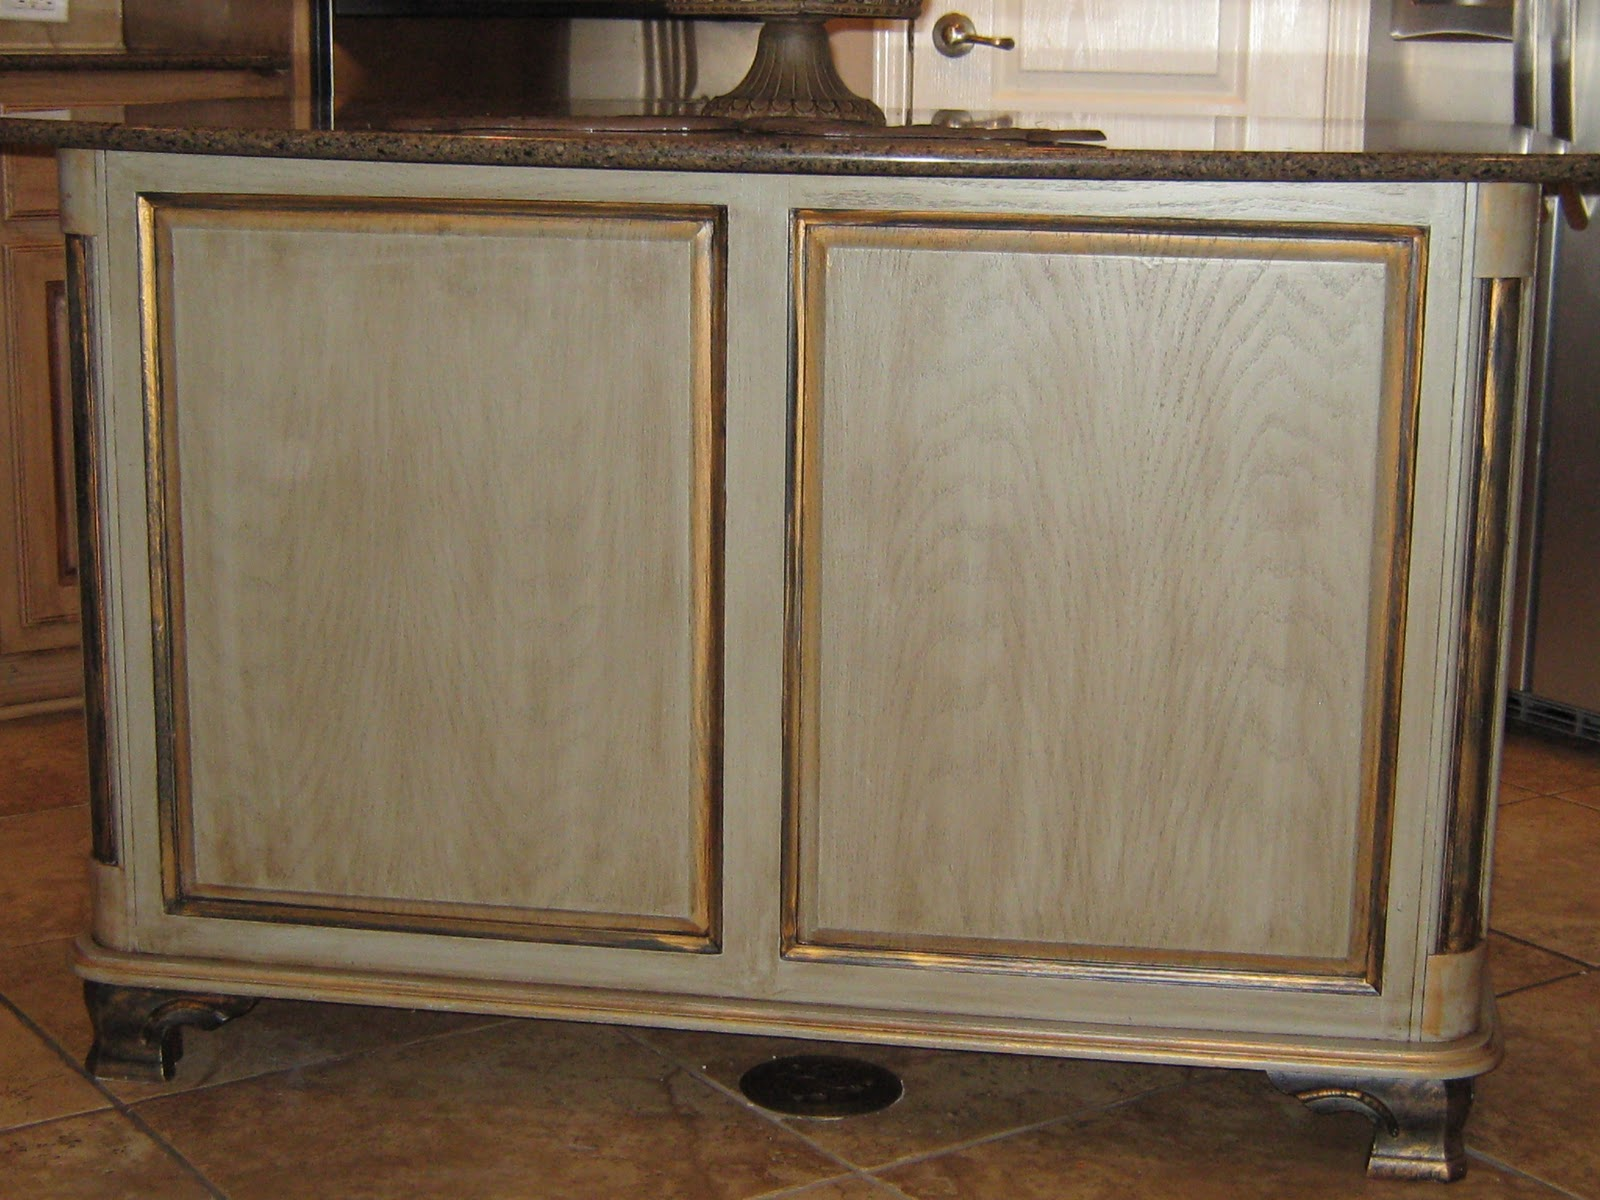 Lynda bergman decorative artisan kitchen island i painted for jackie 39 s kitchen - How to glaze kitchen cabinets that are painted ...